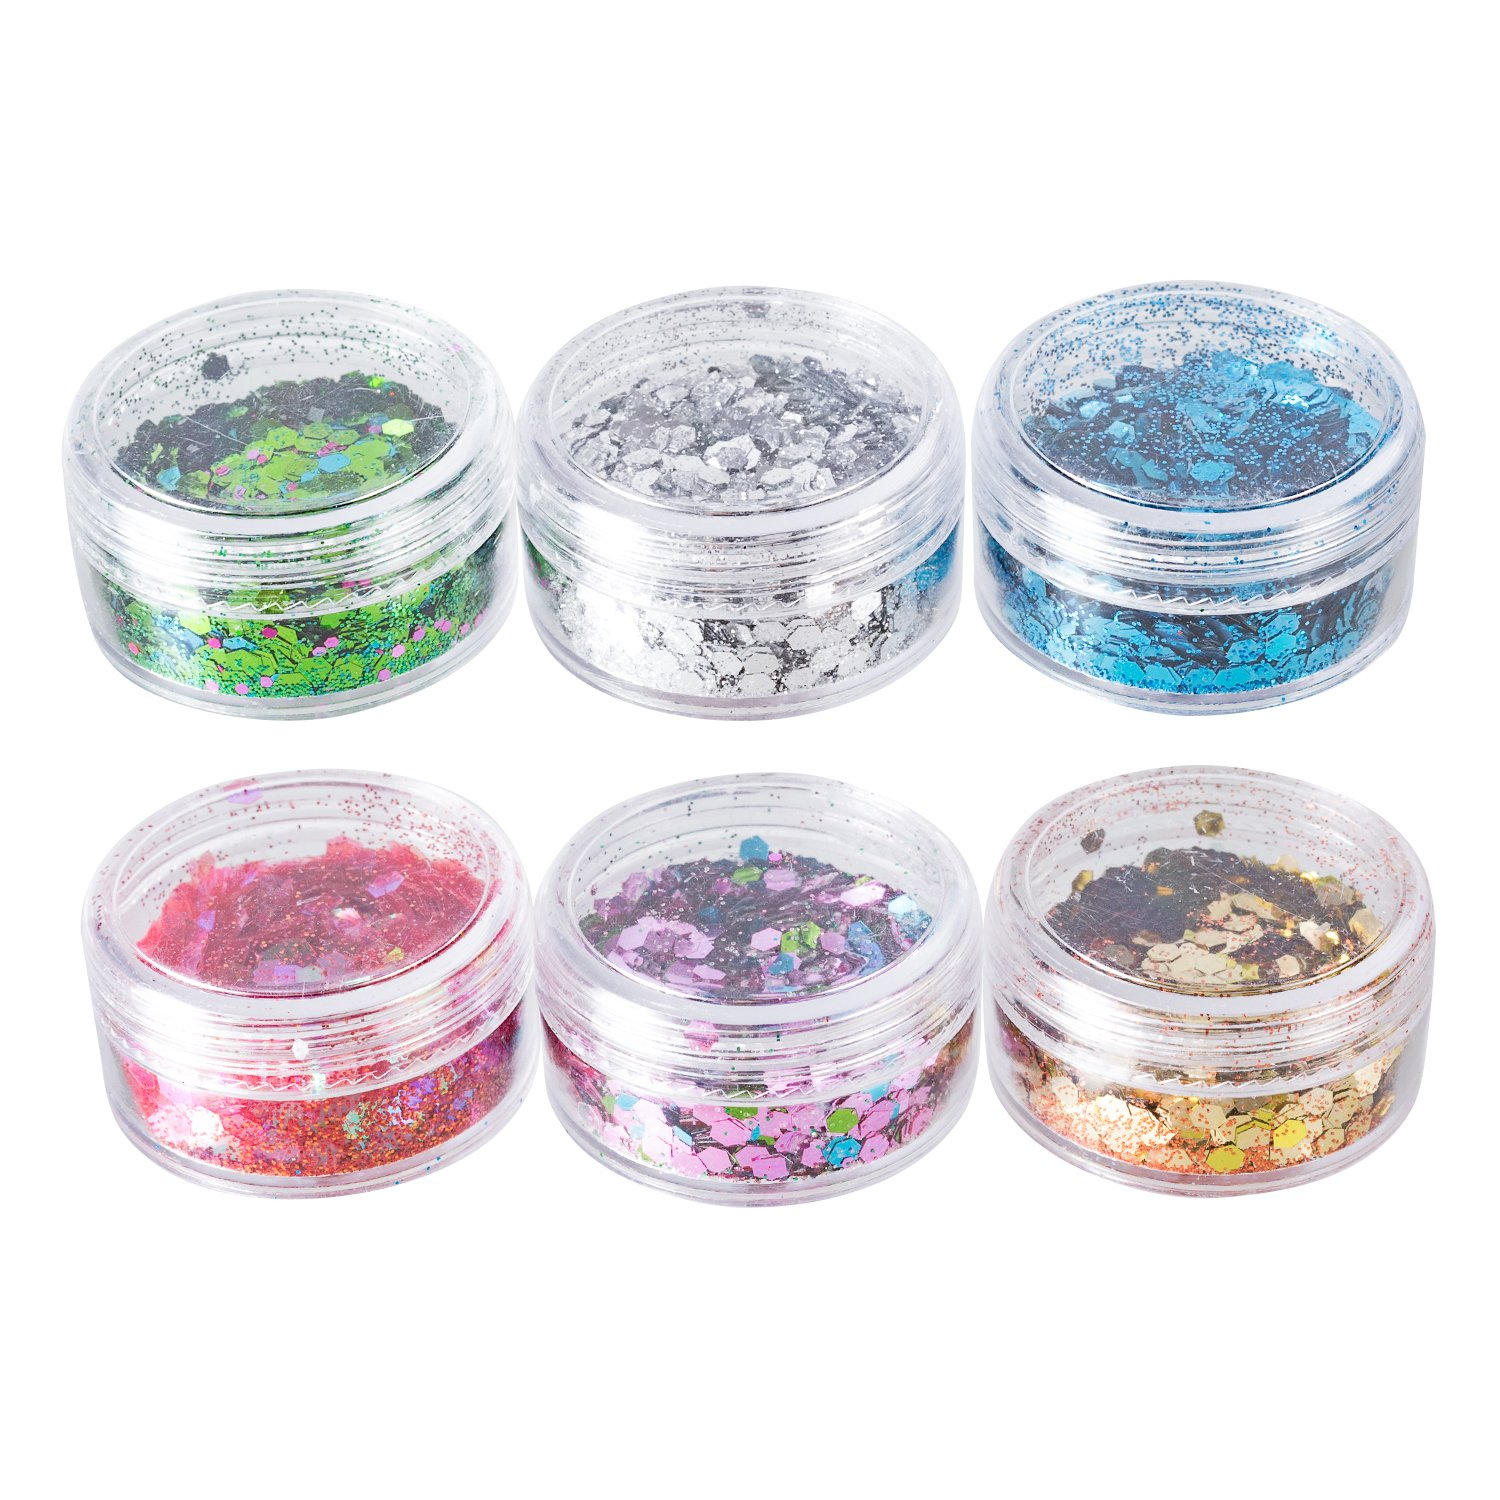 Deoot Mix Chunky Glitter Makeup Festival Glitter for Face Body Hair Nail (6 Boxes)